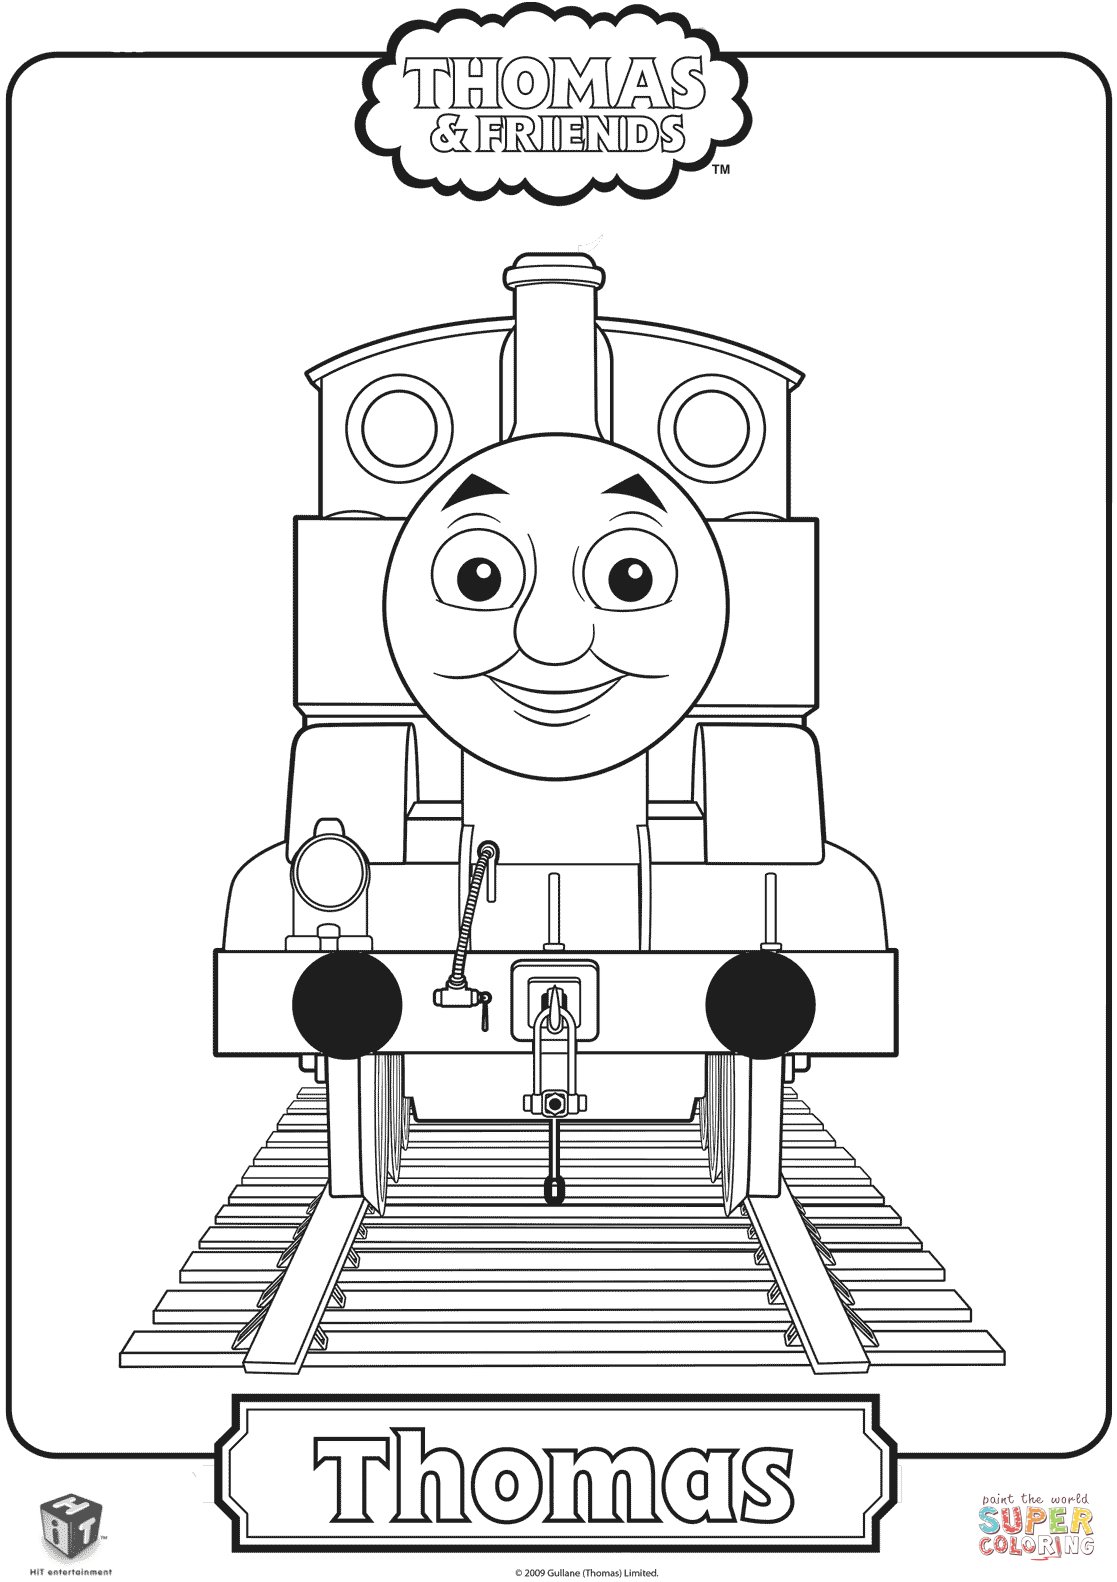 thomas and friends drawing pages thomas the train coloring page free printable coloring pages friends and thomas pages drawing